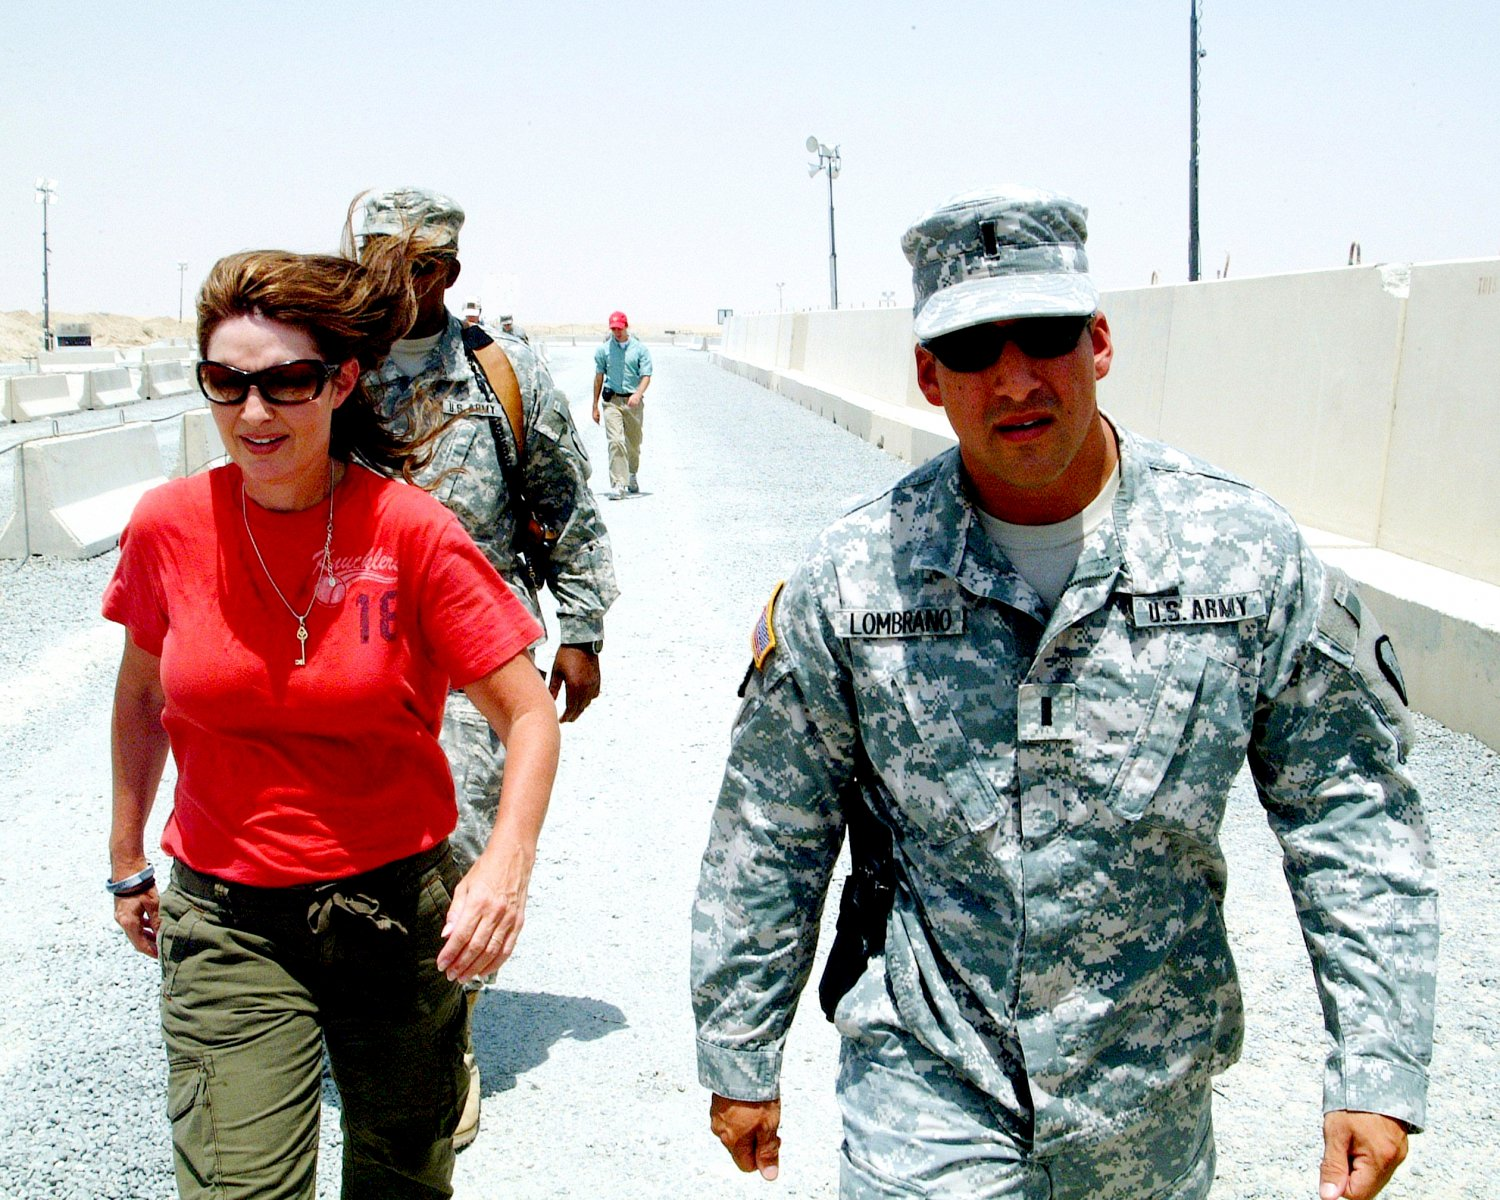 GOVERNOR SARAH PALIN WITH U.S. ARMY TROOPS FROM ALASKA - 8X10 PHOTO (ZZ-042)